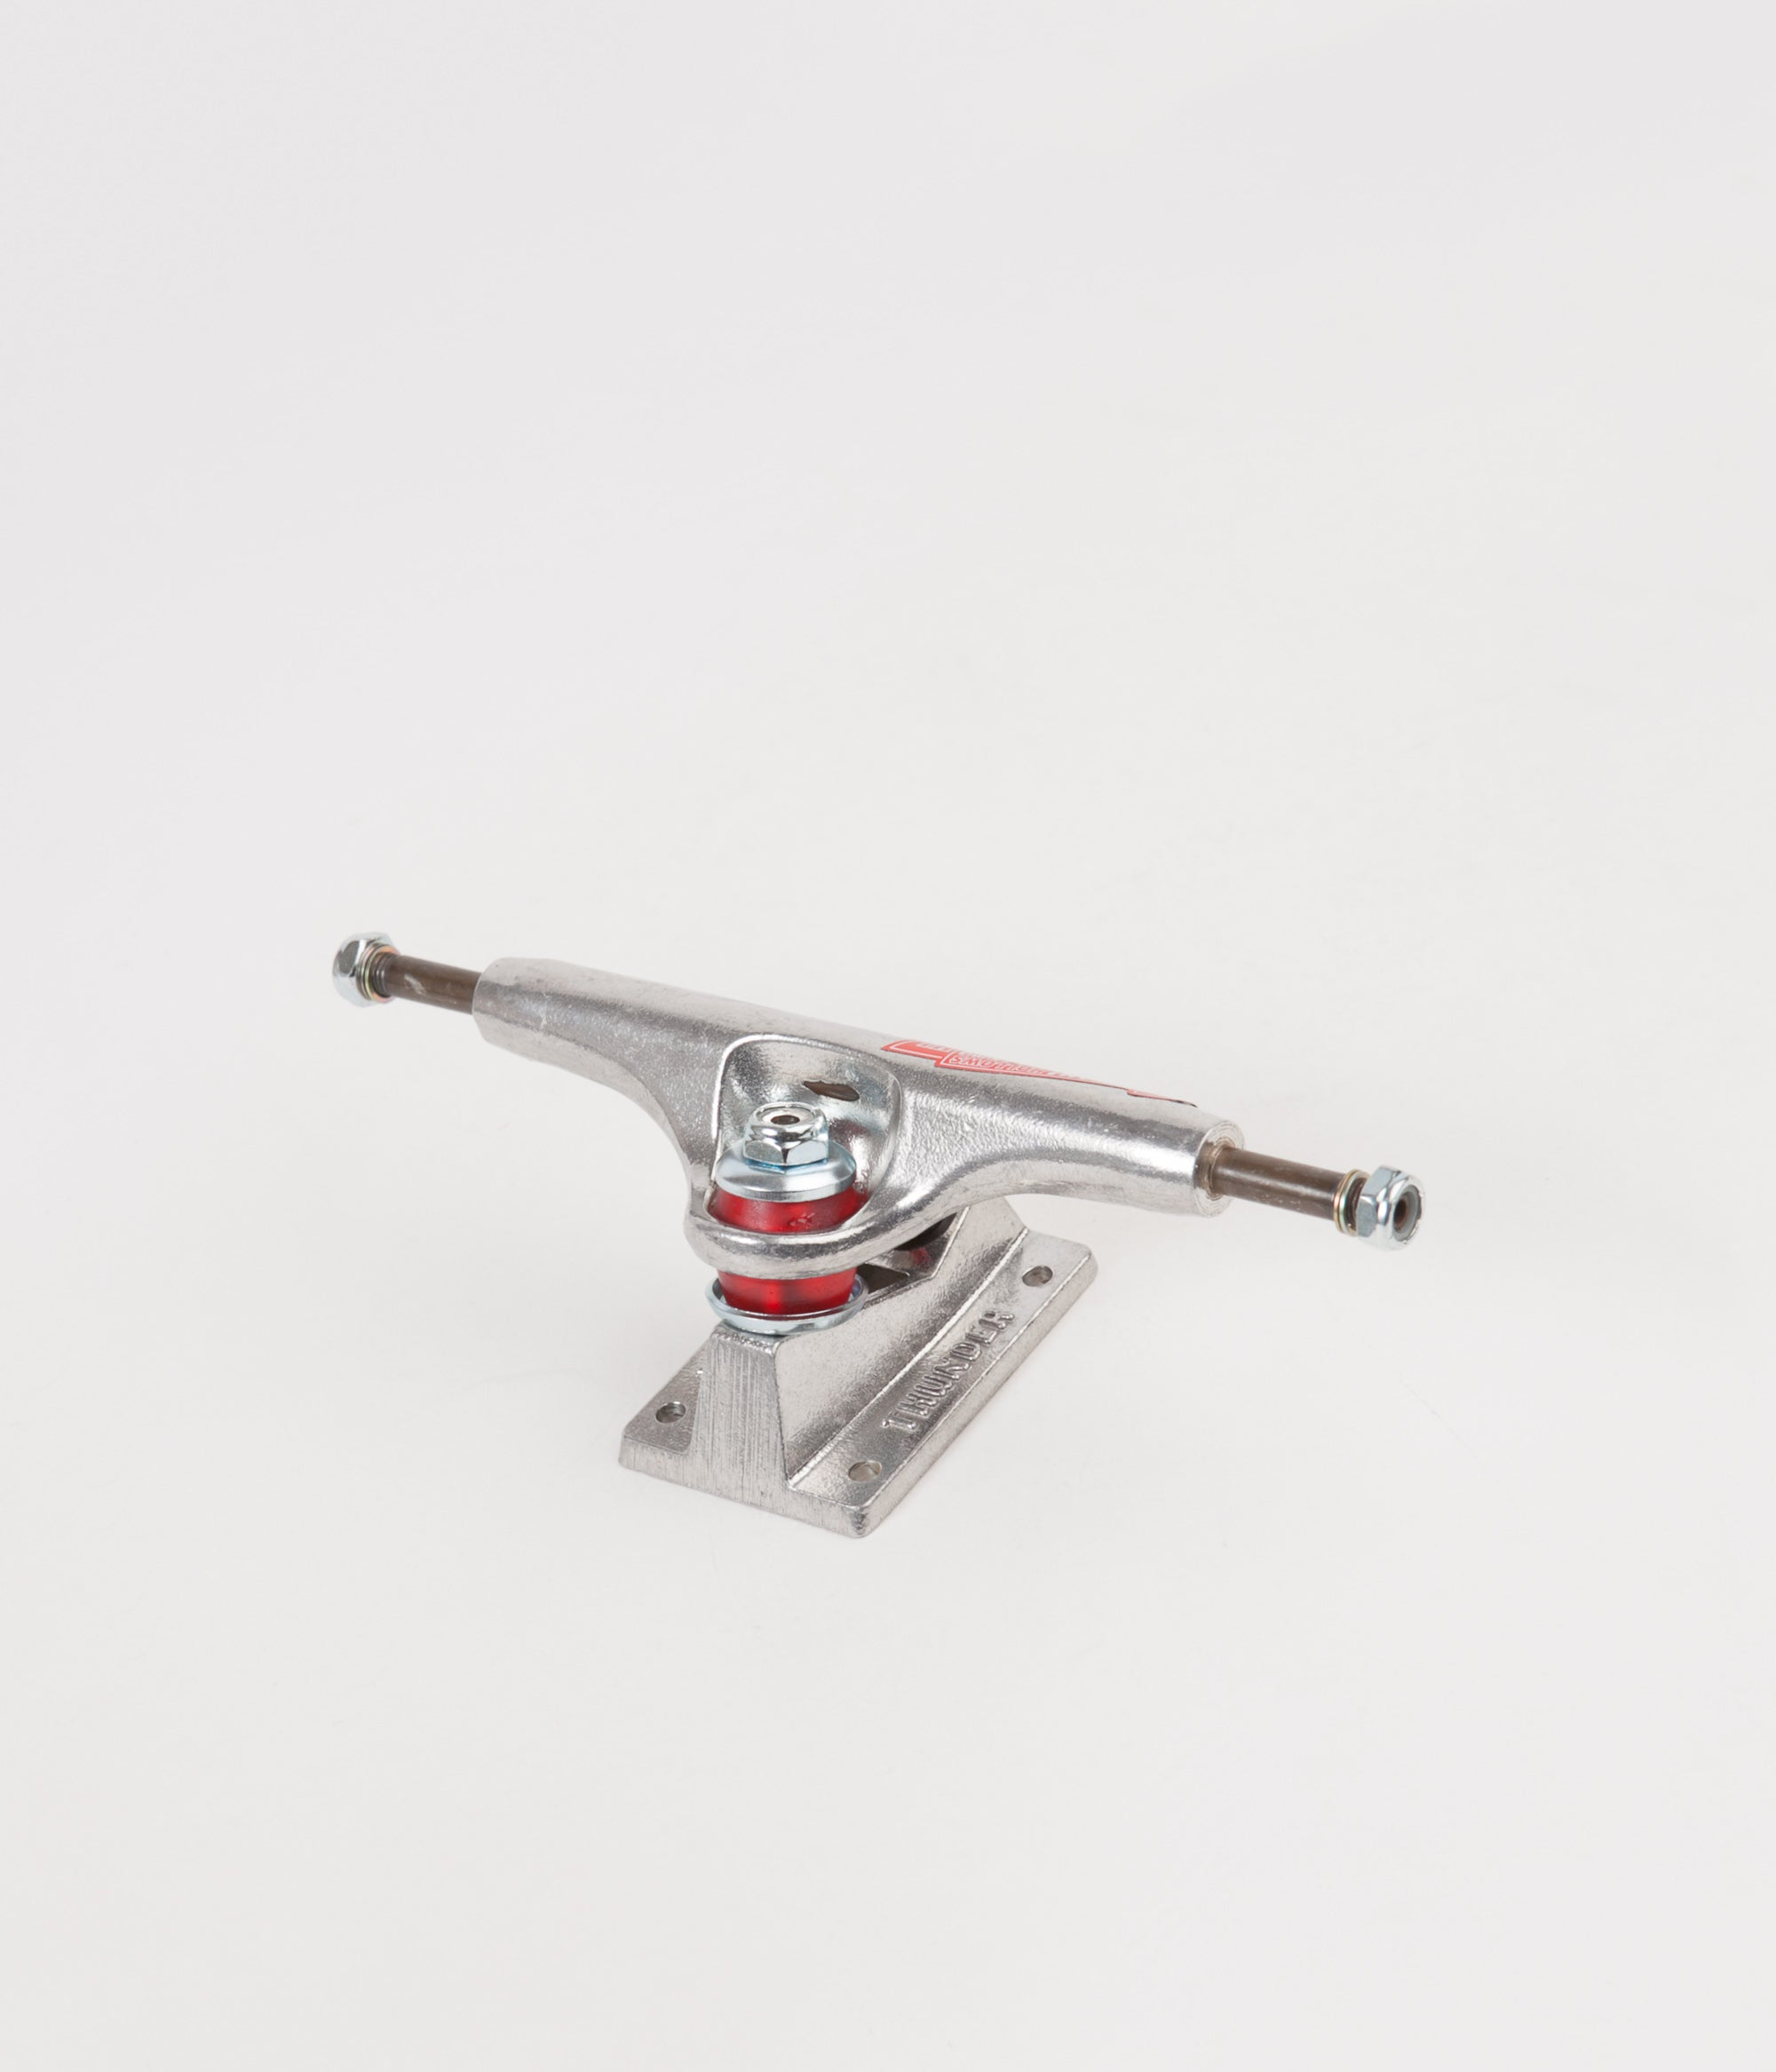 7b8ad8ae4 Thunder 149 H Lights Team Lites Truck - Polished | Flatspot